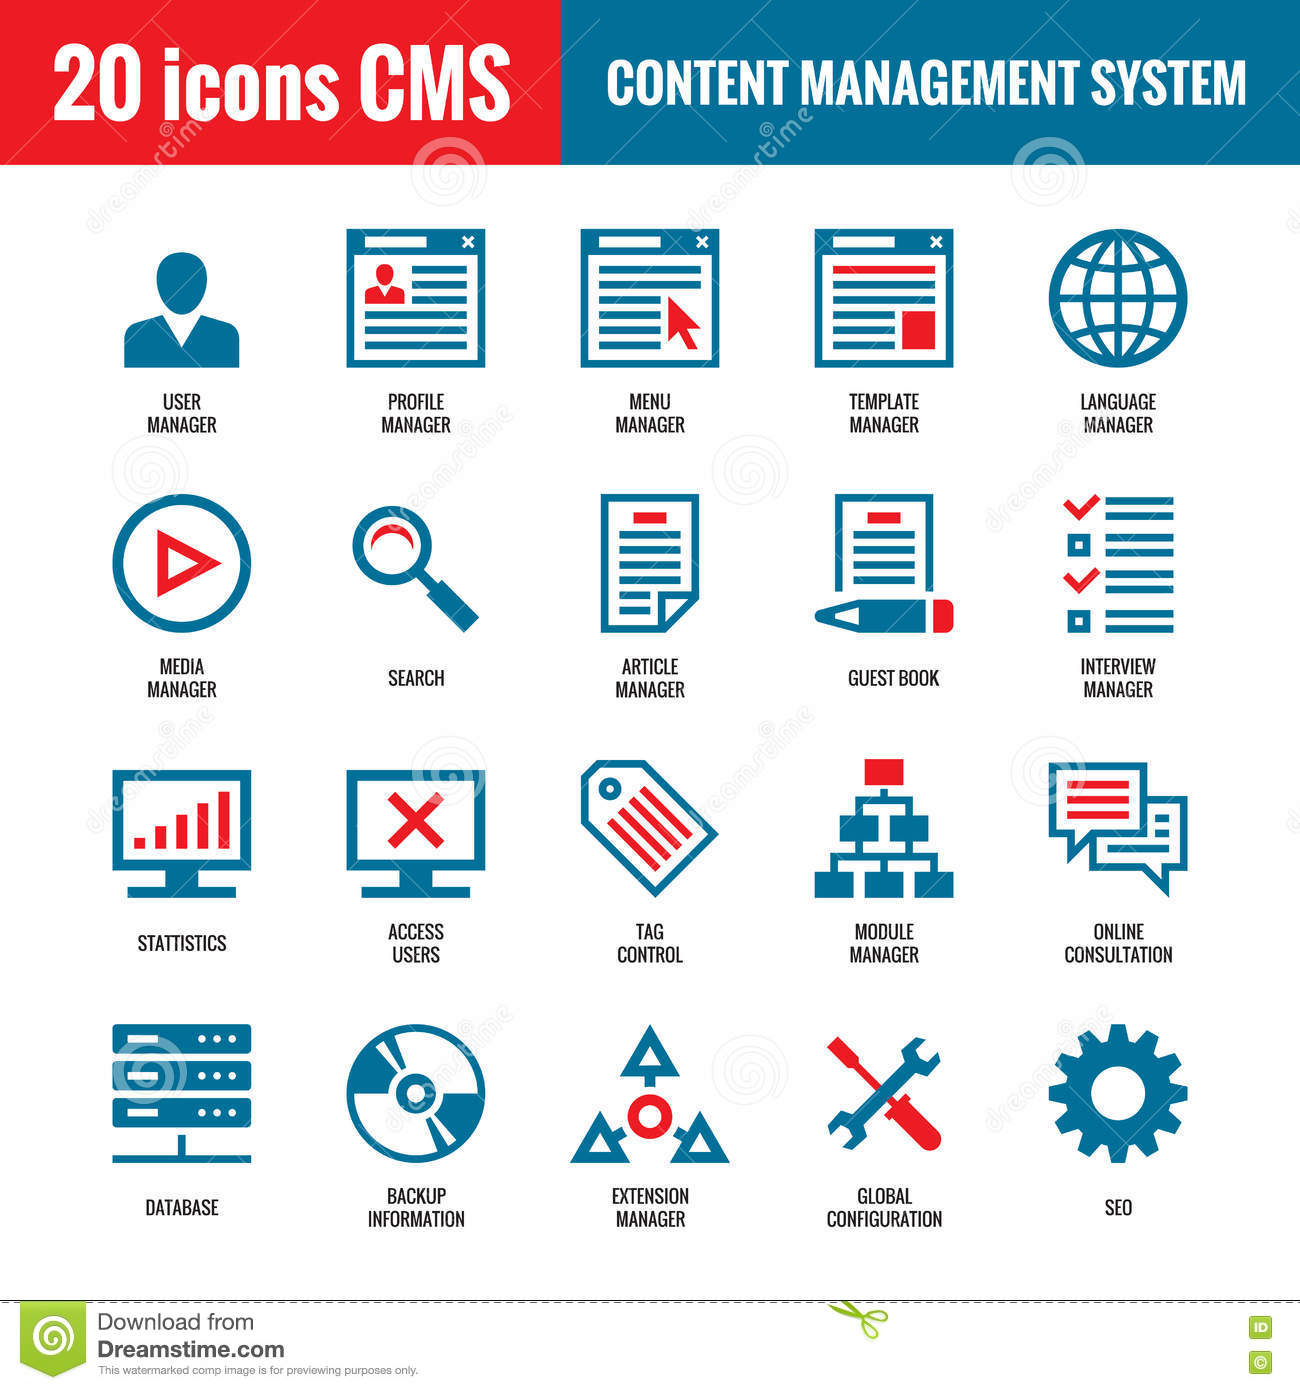 CMS - Content Management System - 20 Vector Icons. SEO - Search Engine Optimization Vector Icons ...